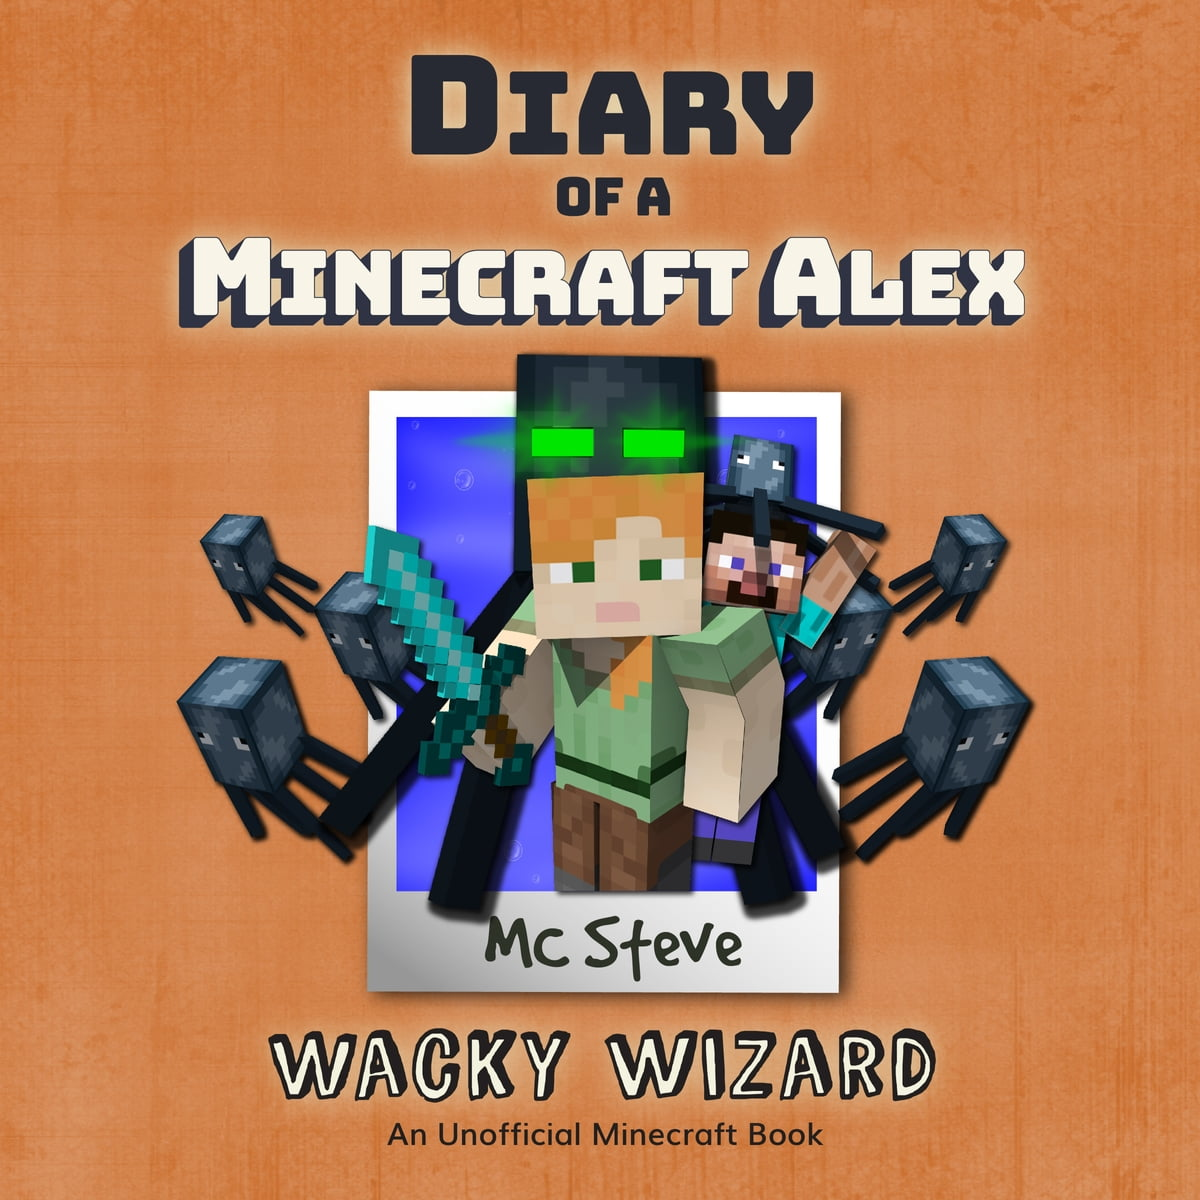 Diary Of A Minecraft Alex Book 4 Wacky Wizard An Unofficial Minecraft Diary Book Livre Audio By Mc Steve Rakuten Kobo